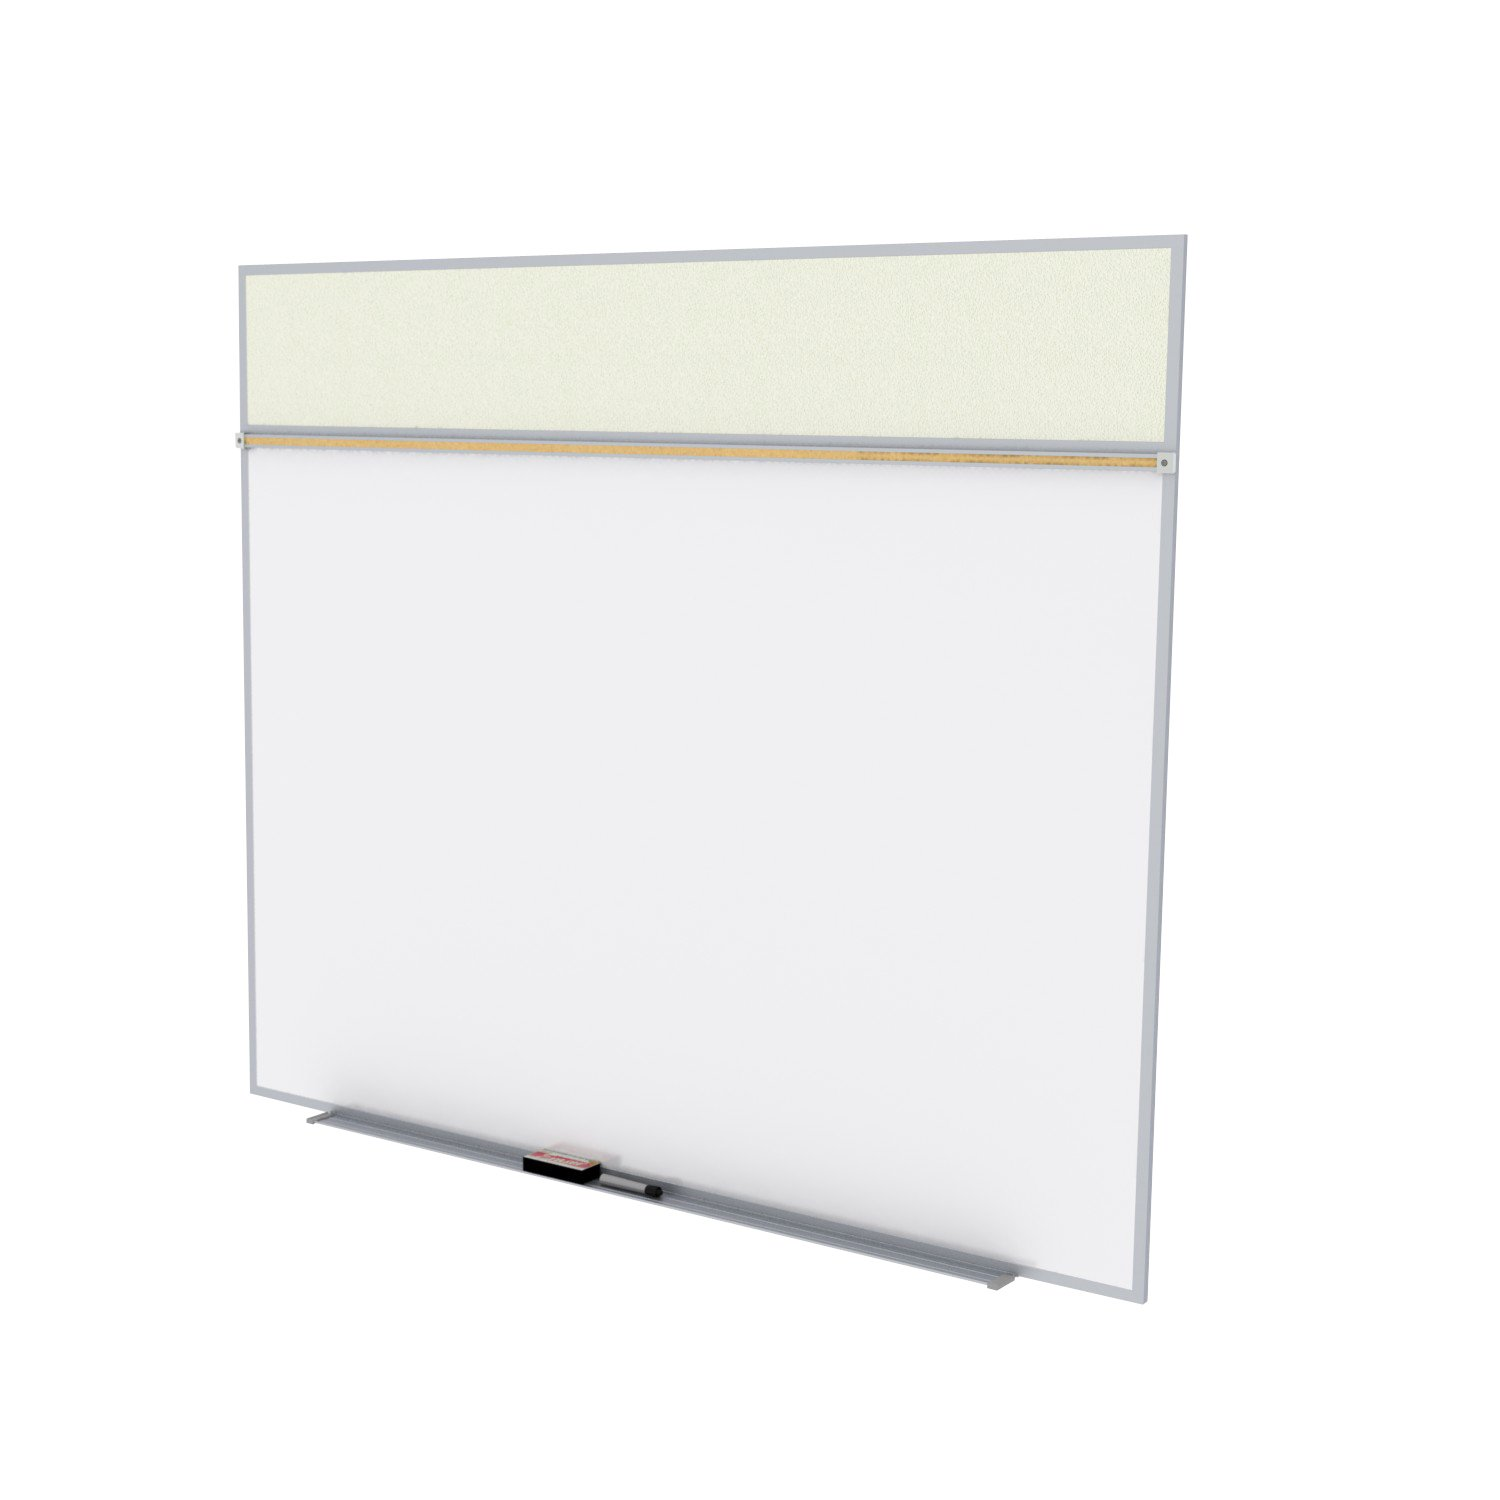 Ghent 5 x 8 Feet Combination Board, Porcelain Magnetic Whiteboard and Vinyl Fabric Bulletin Board, Ivory , Made in the USA